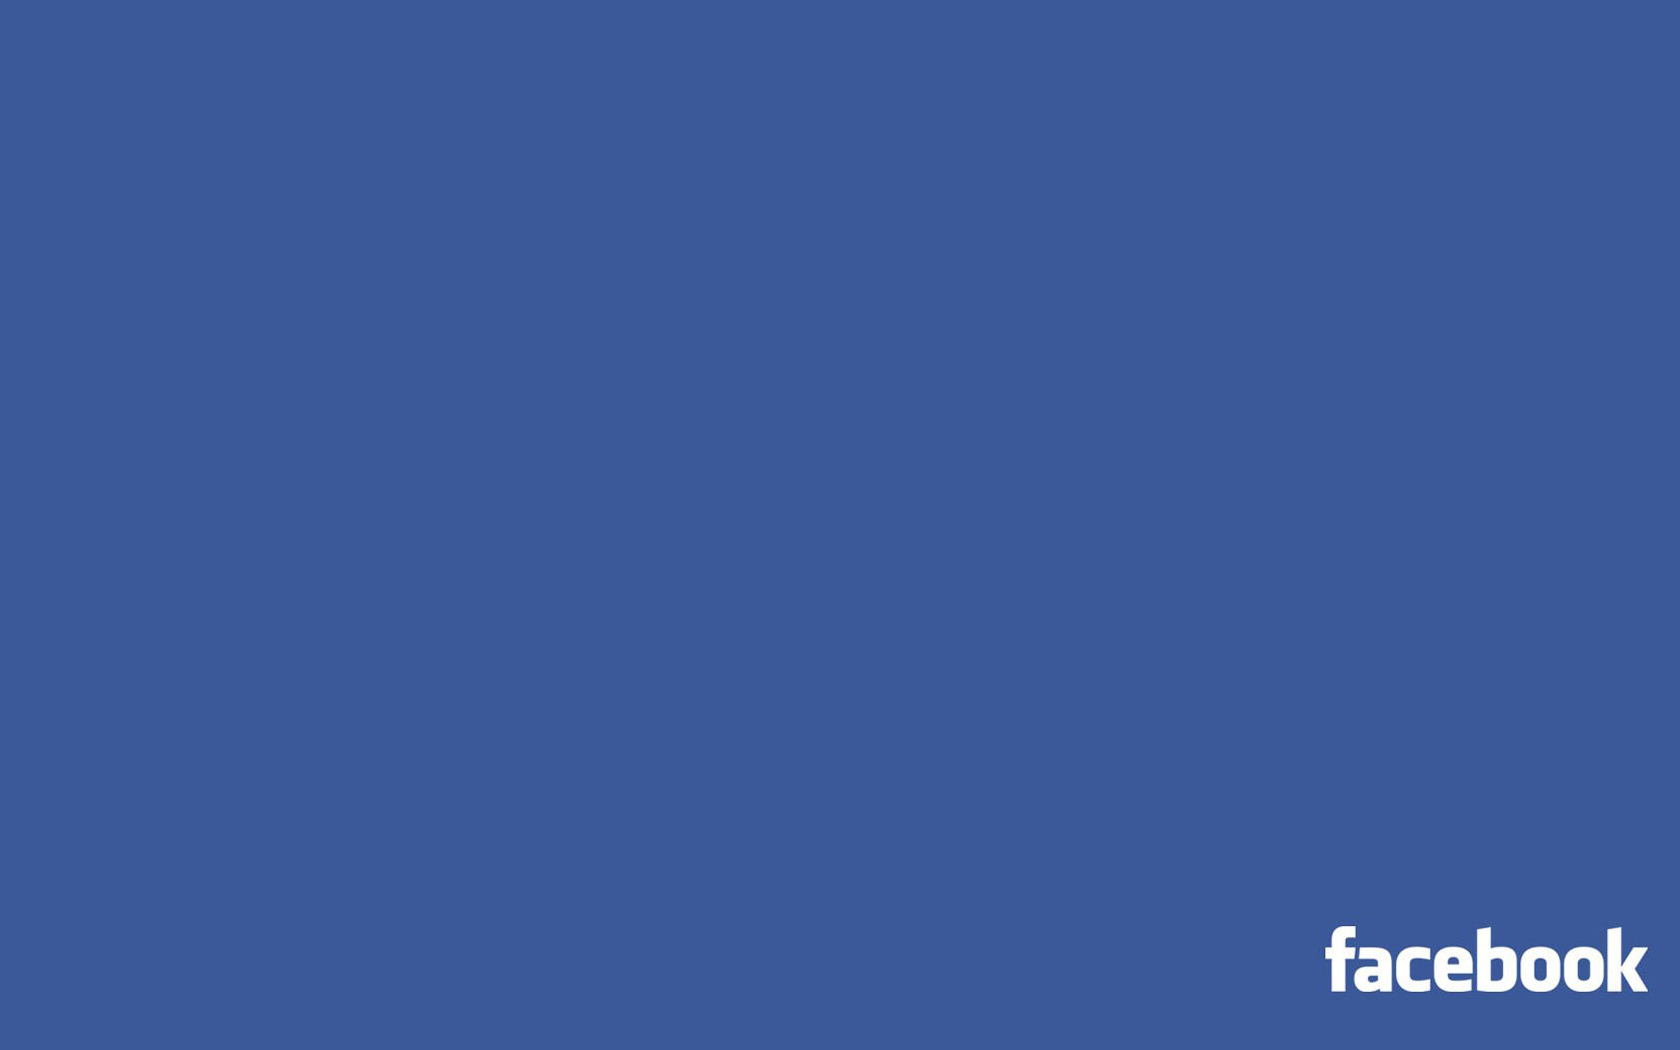 21 facebook backgrounds social networking pictures